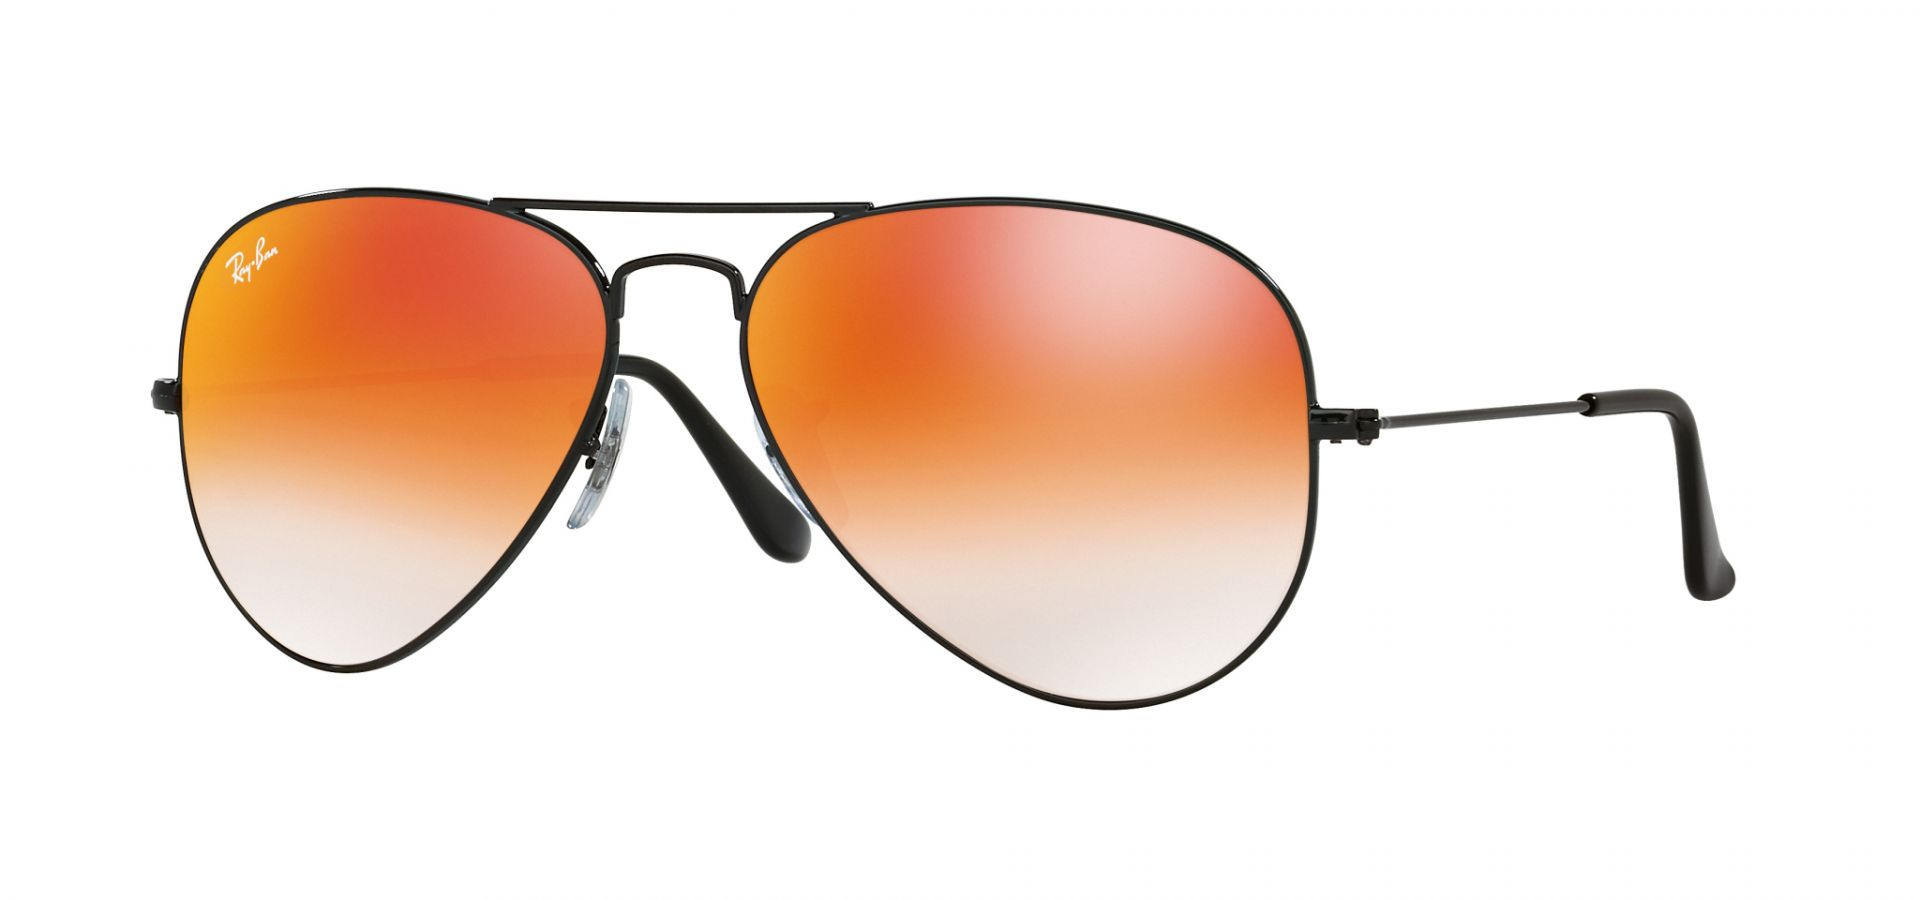 Sunčane naočale Ray Ban 0RB3025: Boja: Shiny Black Orange Gradient Flash, Veličina: 58/14/135, Spol: unisex, Materijal: metal